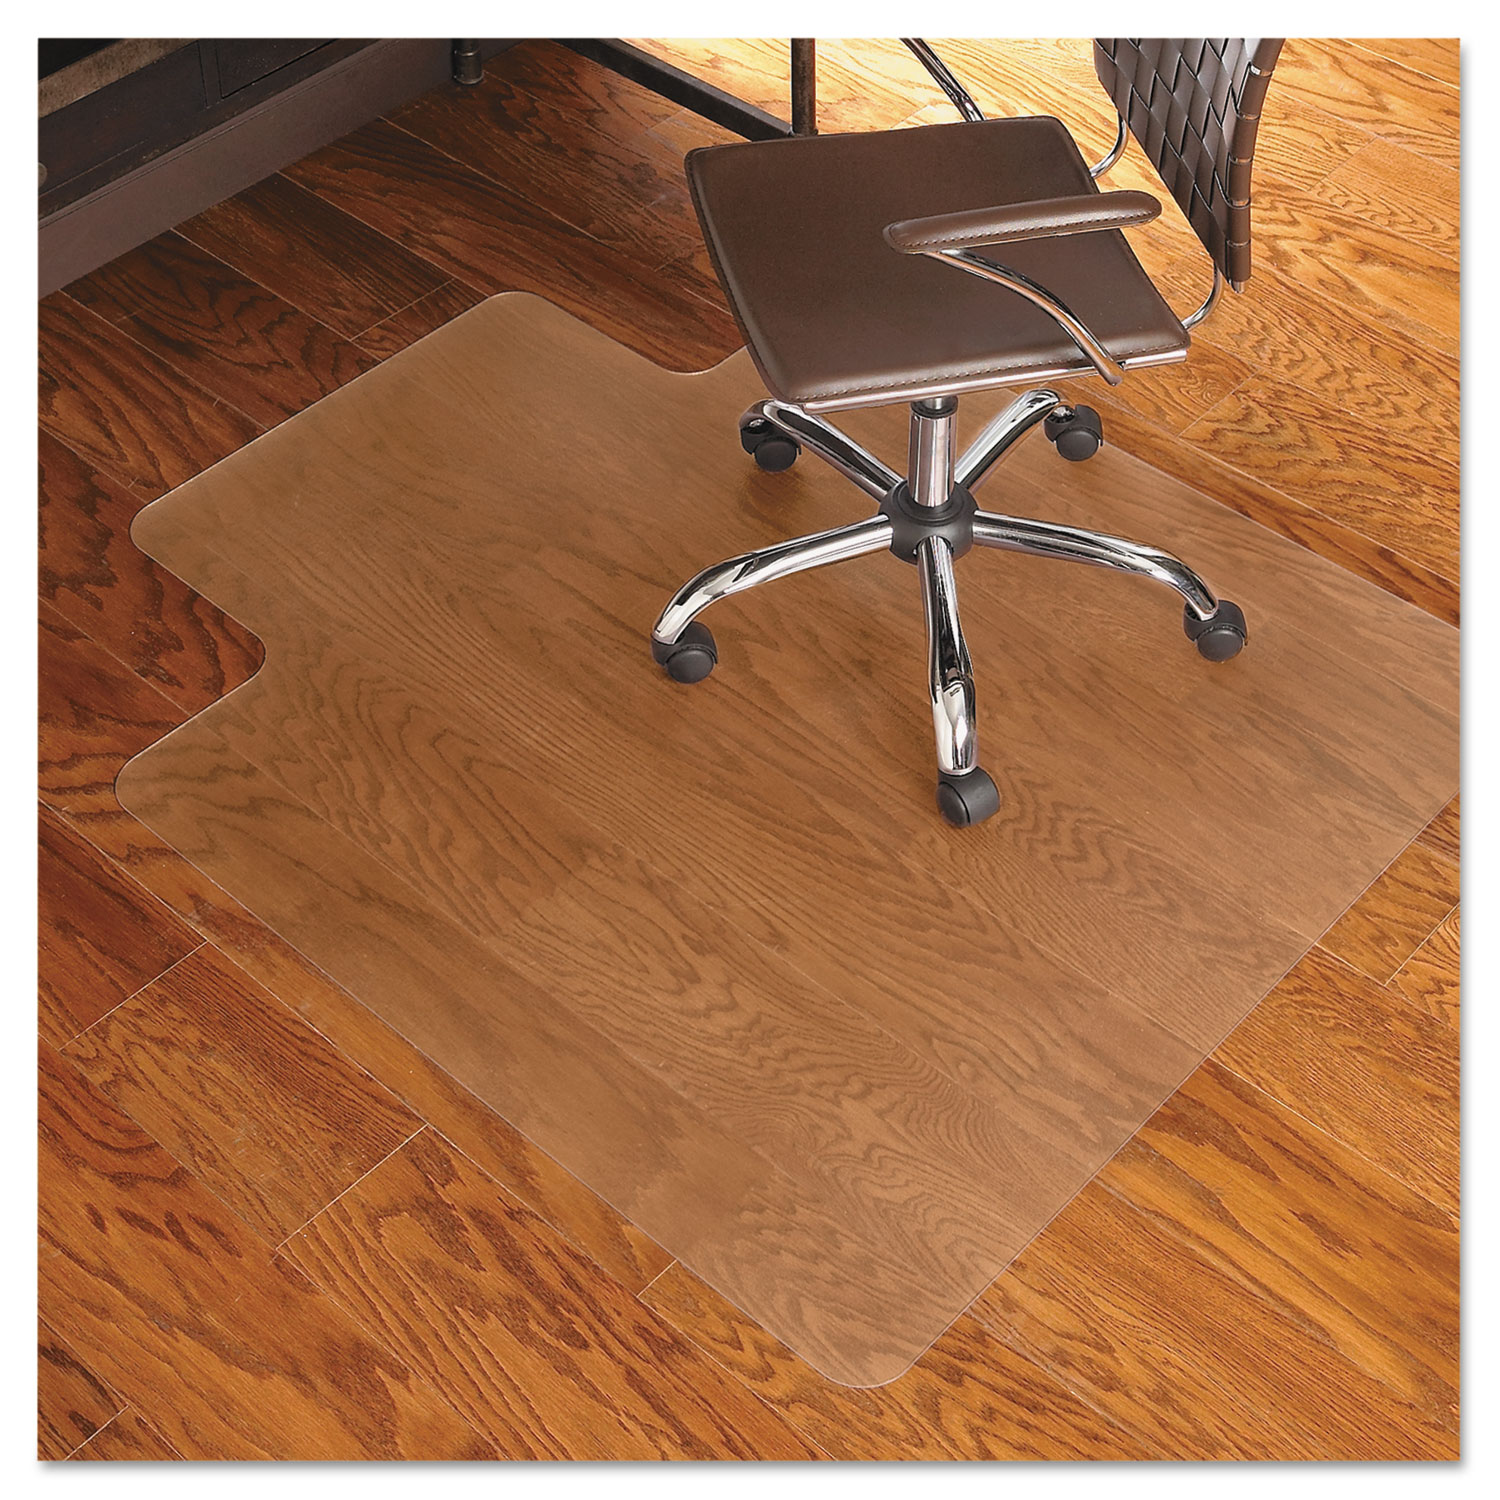 45x53 Lip Chair Mat Economy Series for Hard Floors